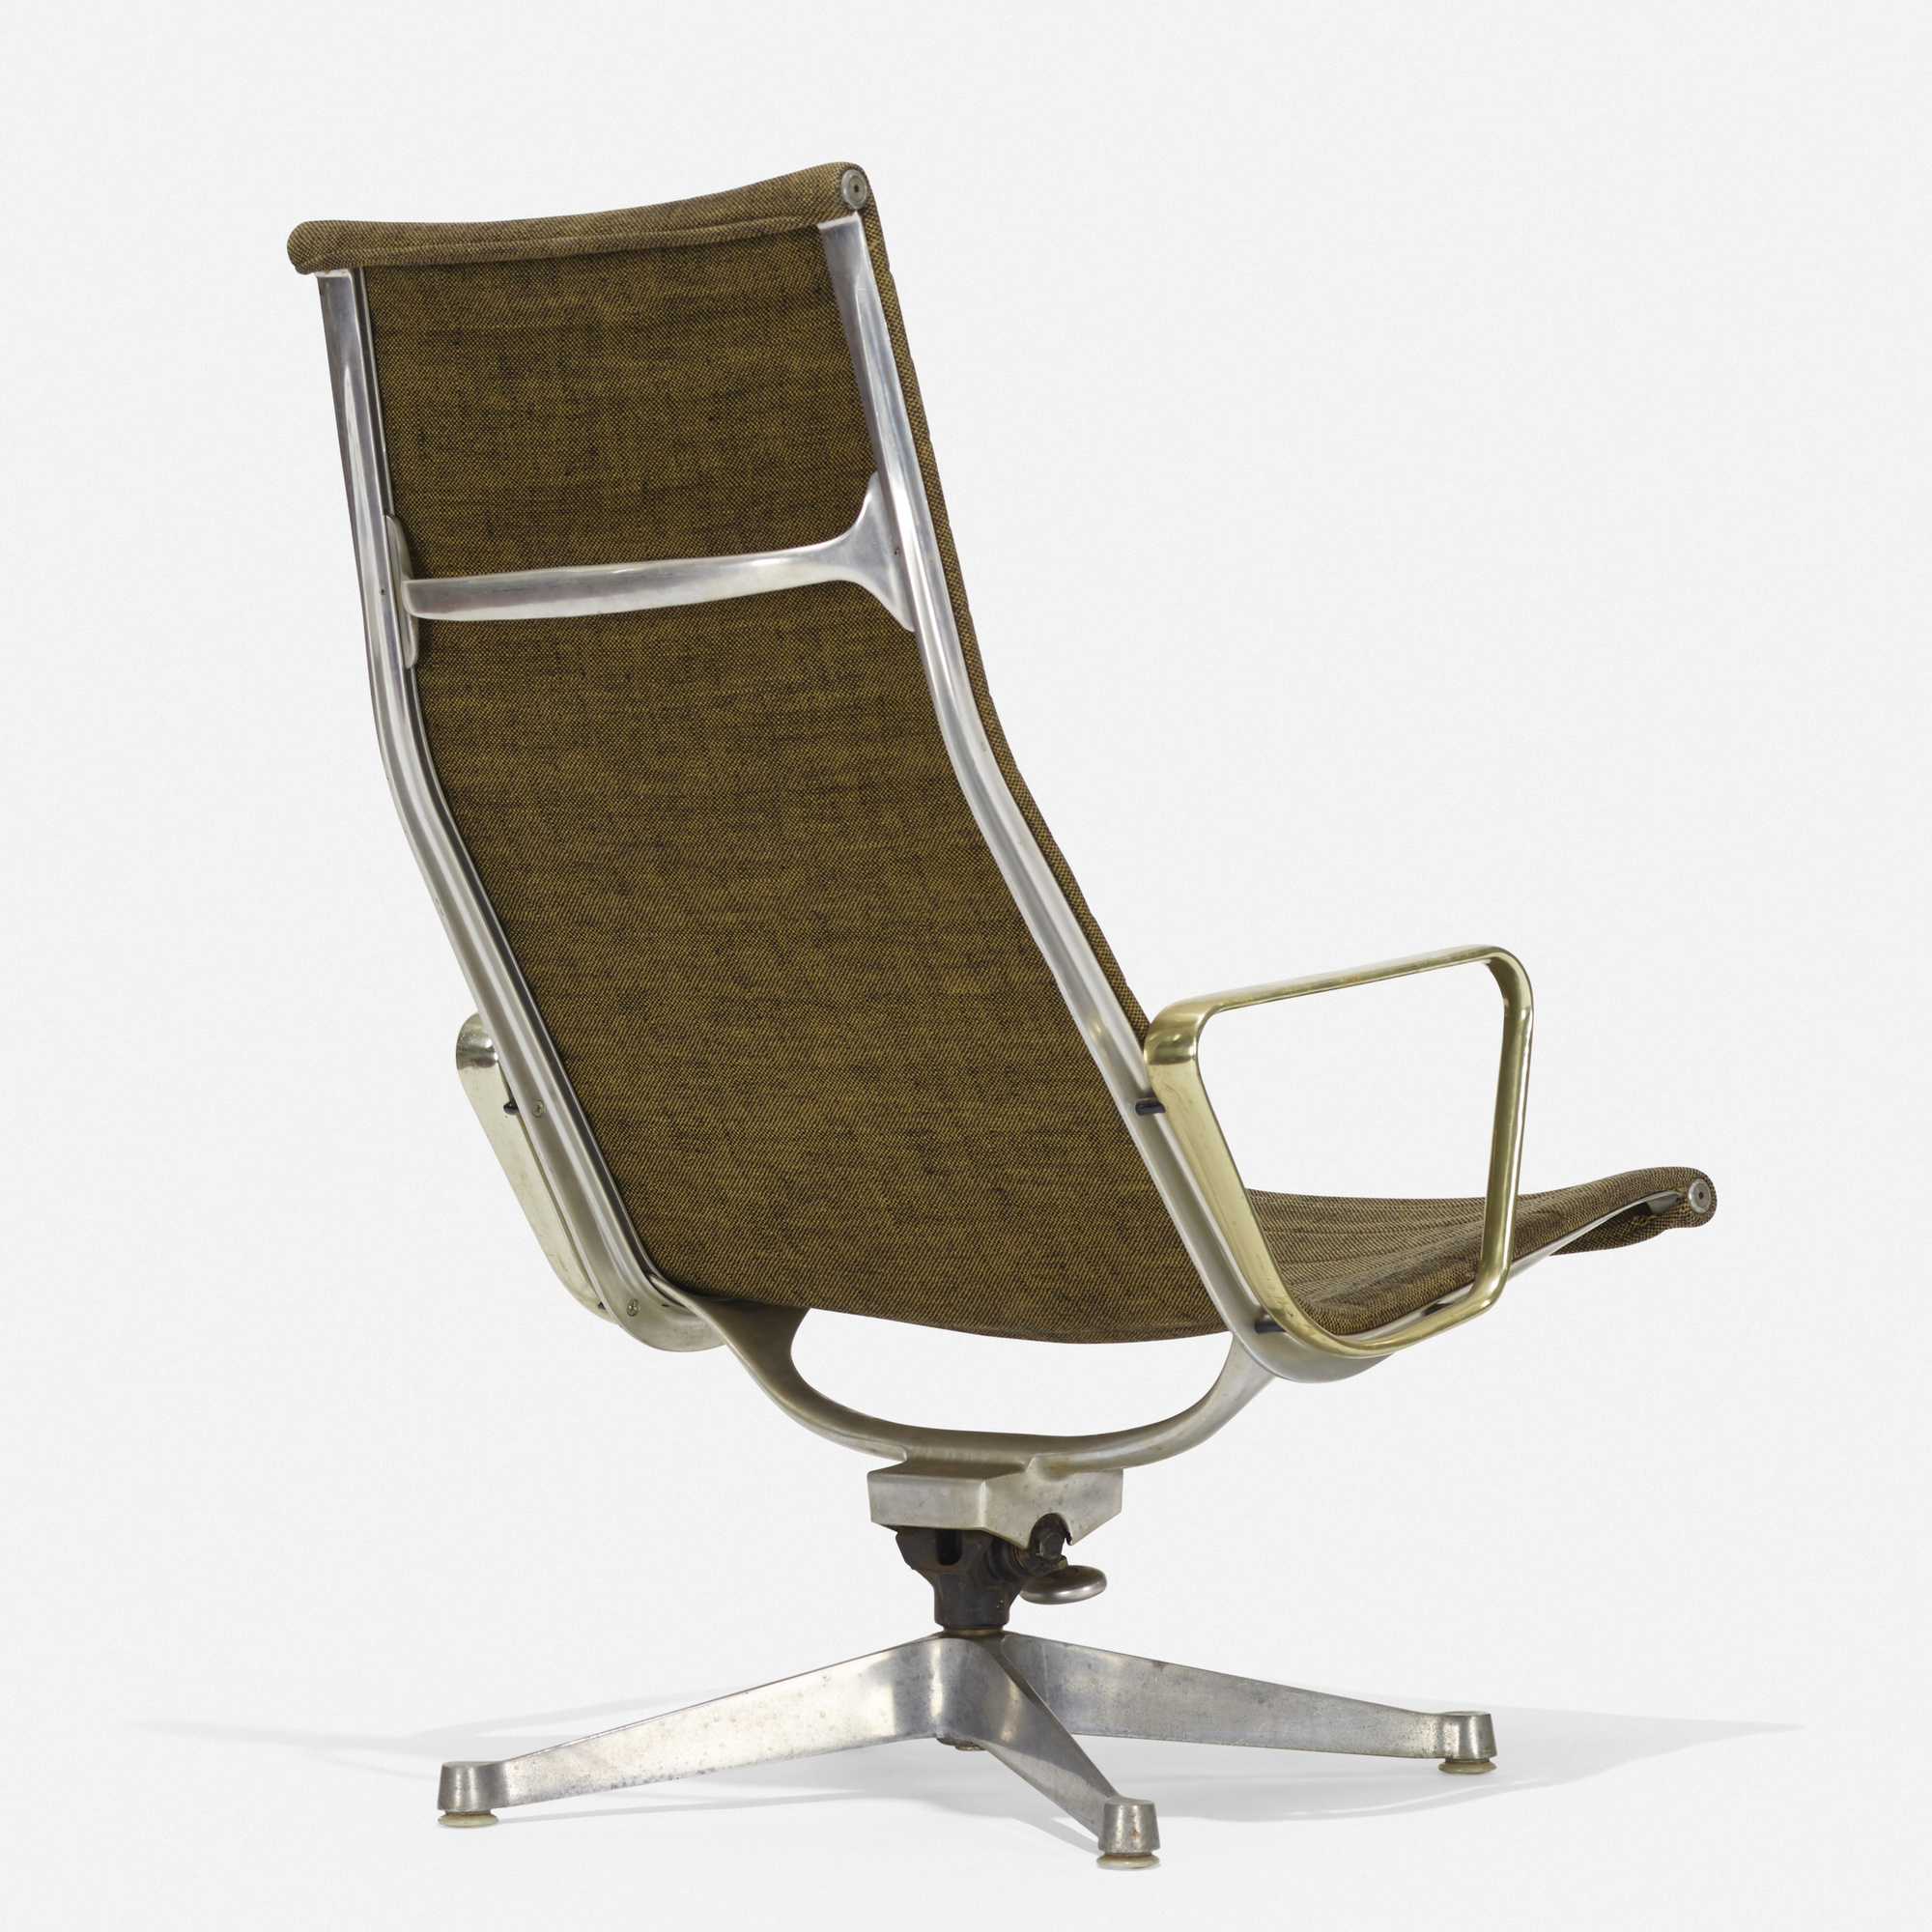 271 Charles And Ray Eames Aluminum Group Lounge Chair American